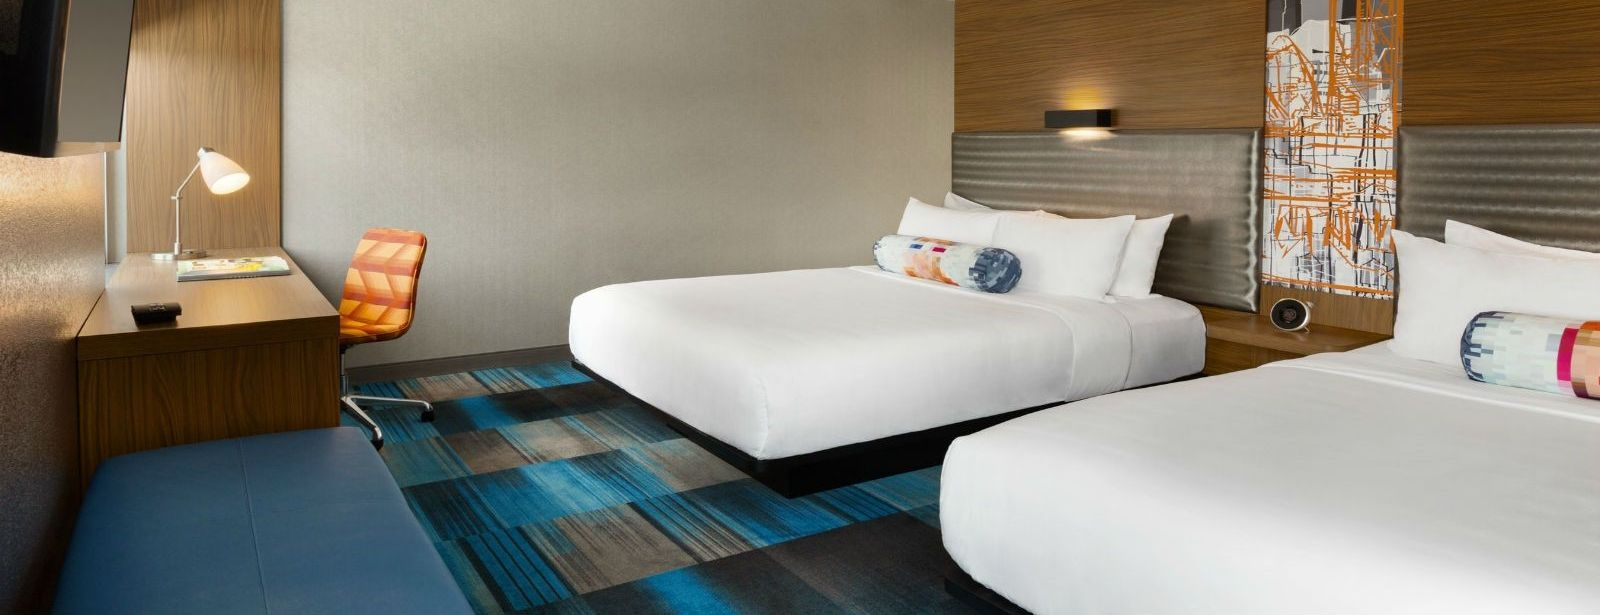 Dallas Accommodations - Aloft Double Queen Room